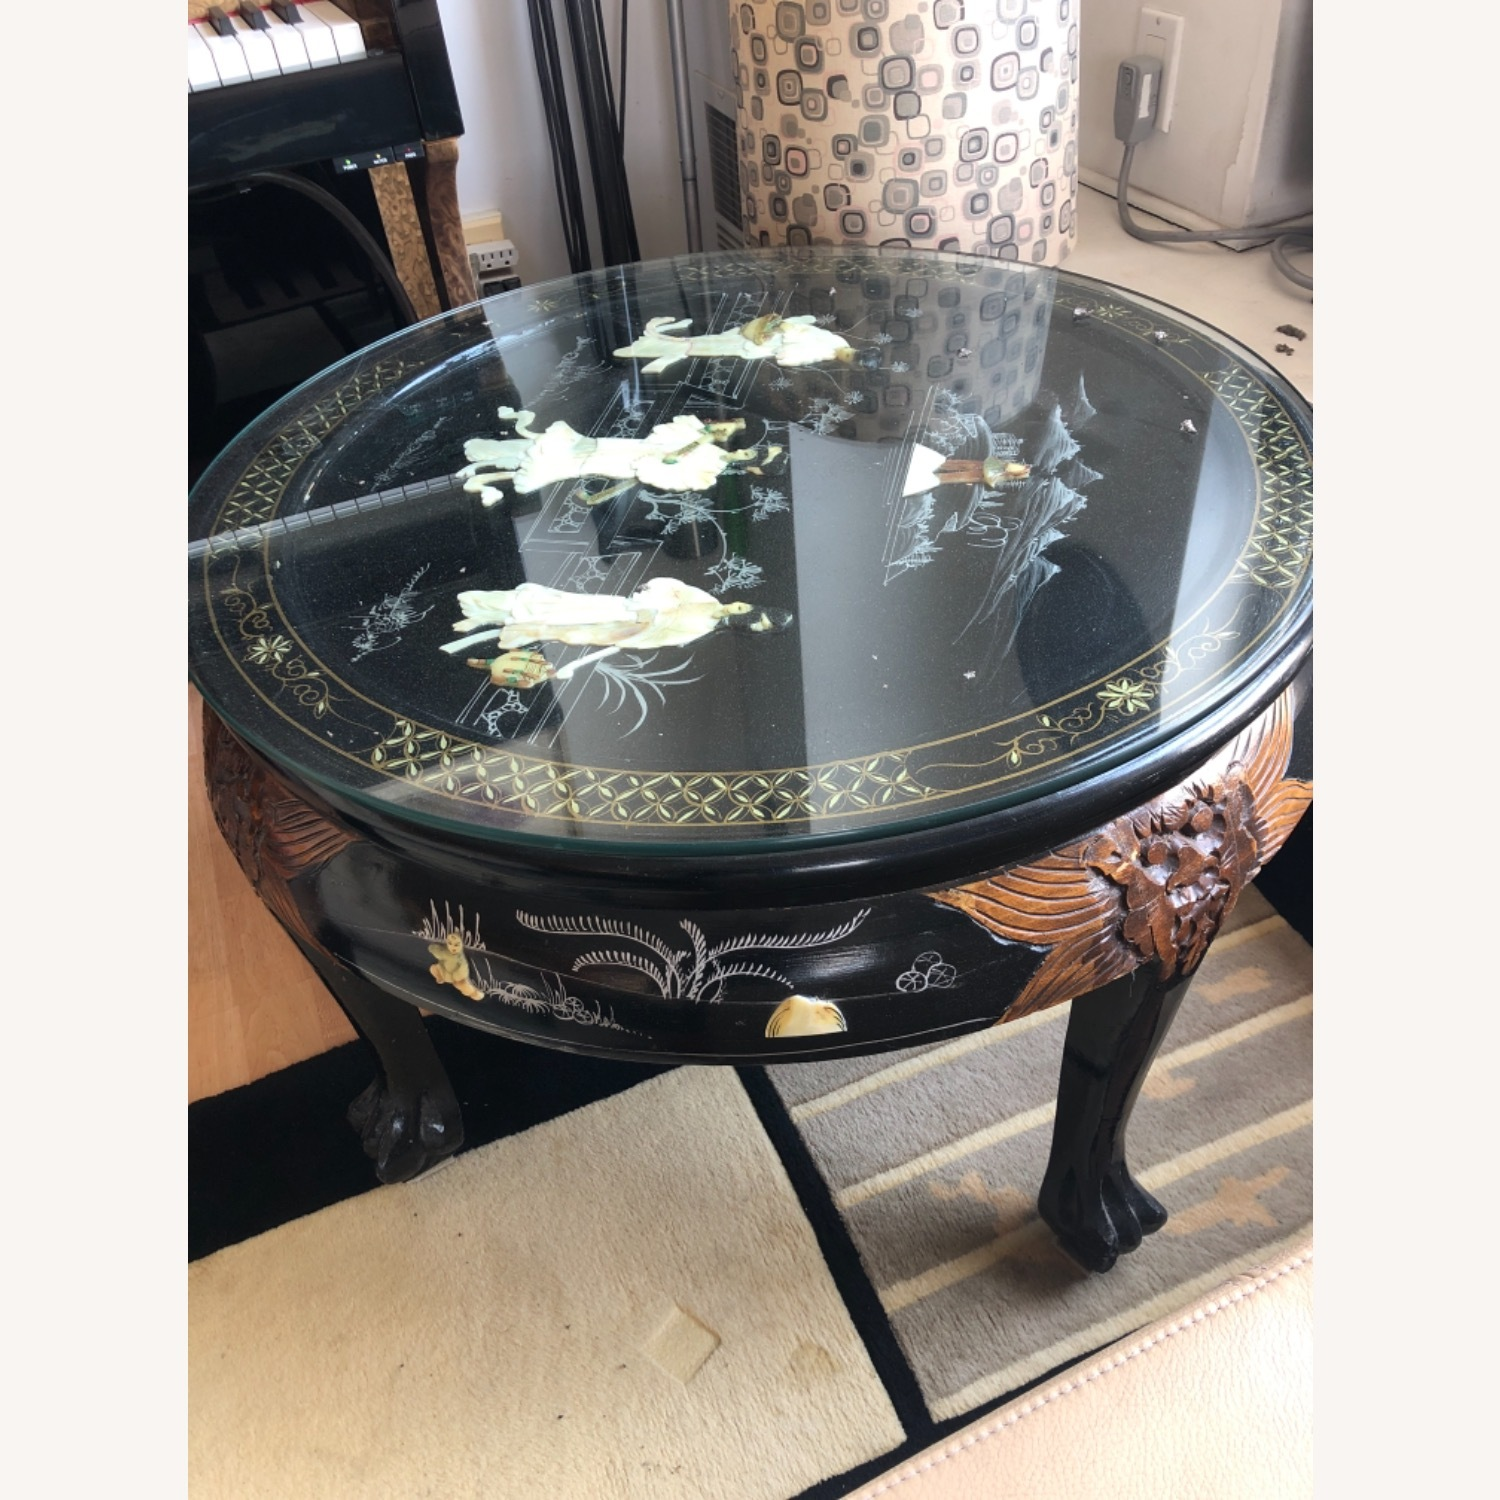 Chinese lacquered Inlaid Coffee Table - image-3